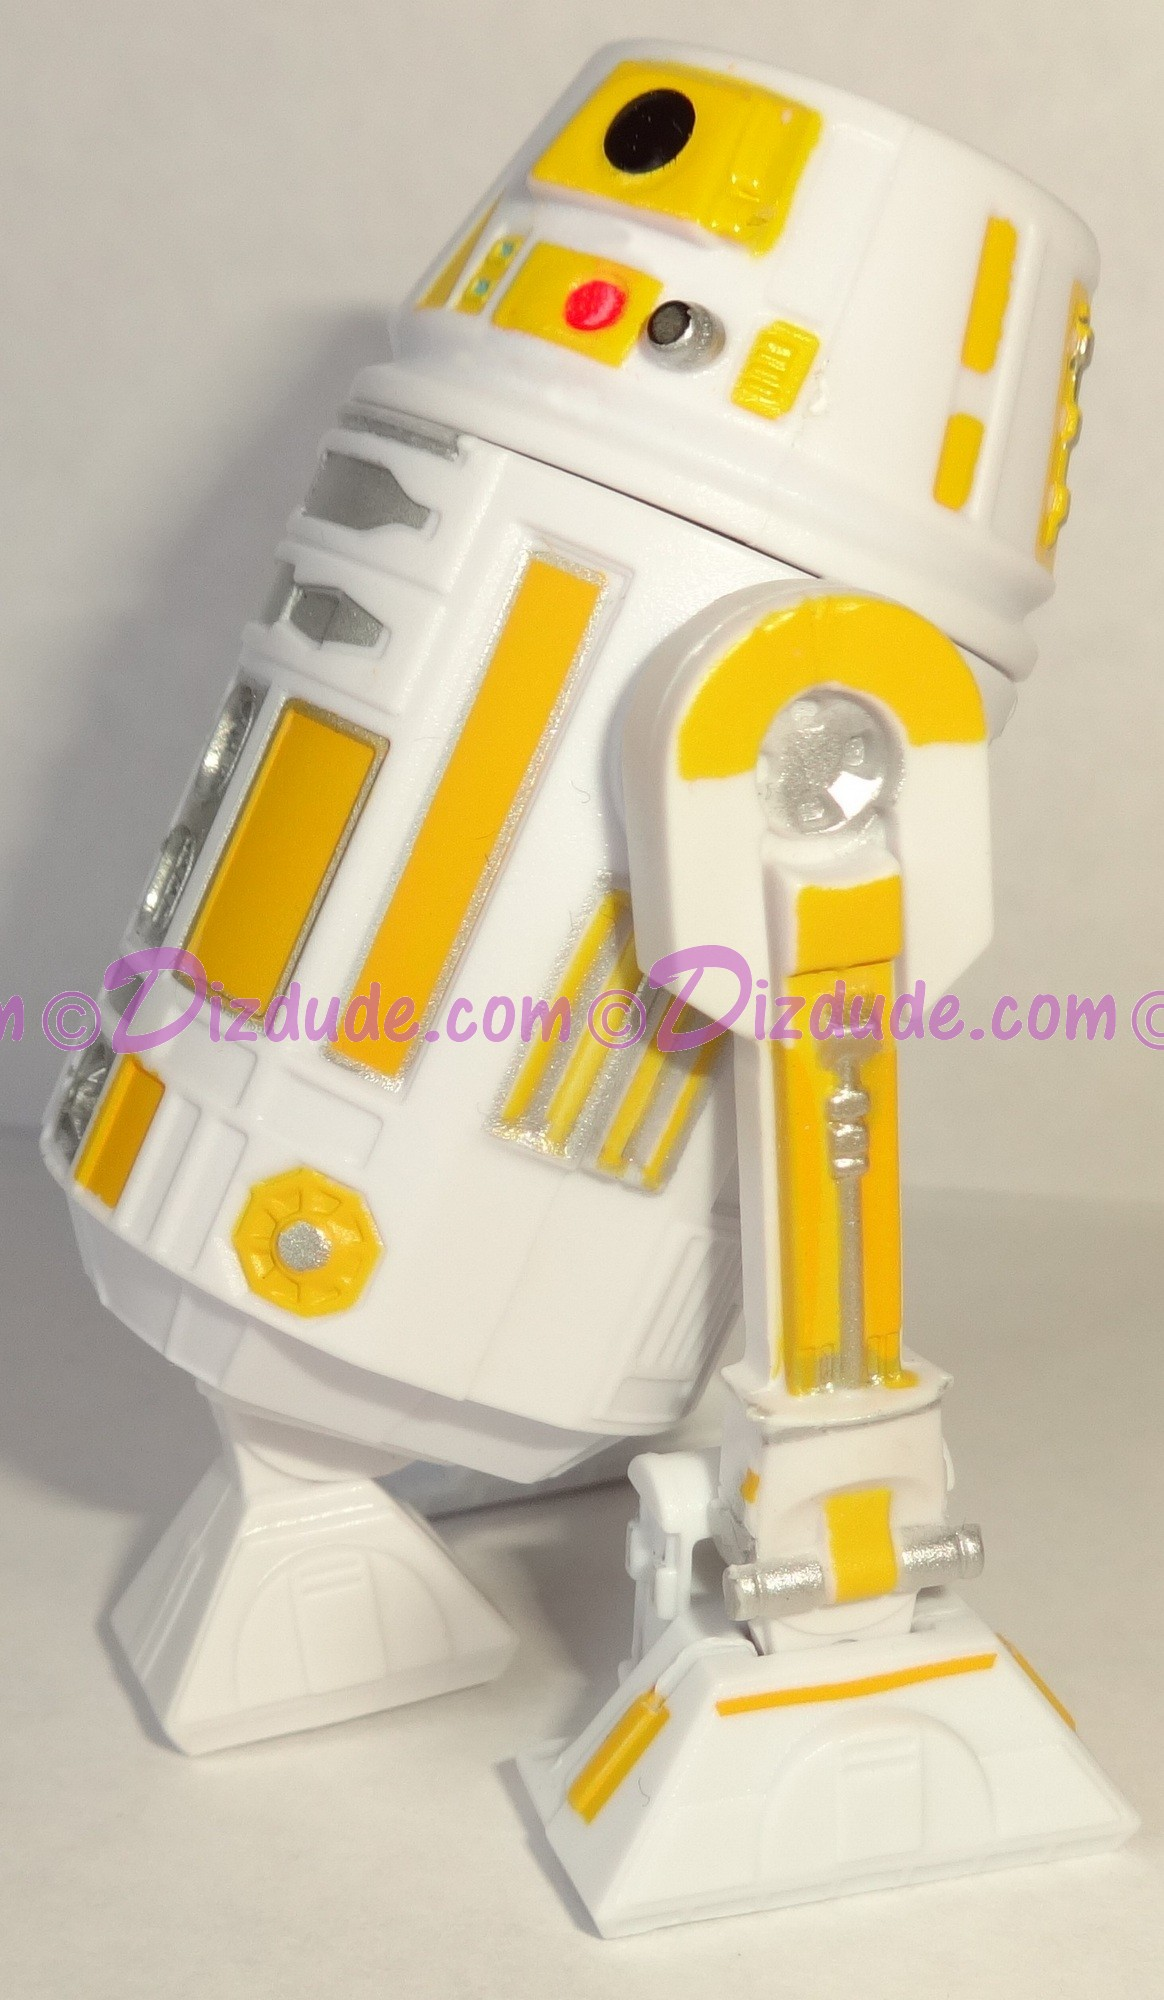 R6 White & Yellow Astromech Droid 2016 Series 2 from Disney Star Wars Build-A-Droid Factory ~ Pick-A-Hat © Dizdude.com